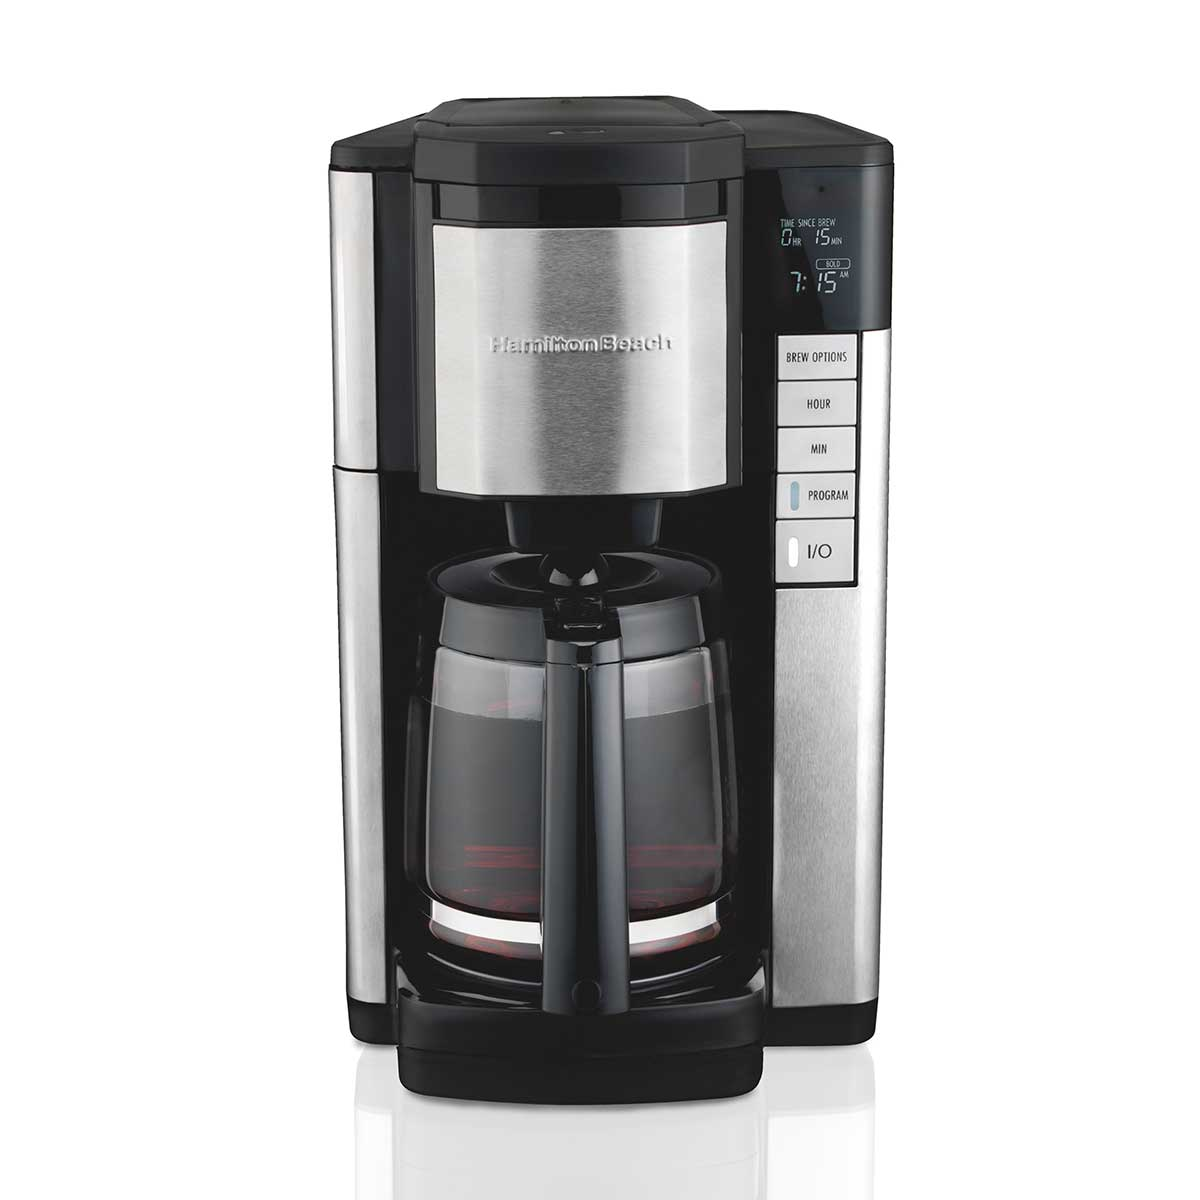 12-Cup Programmable Coffee Maker with FrontFill™, Black & Stainless (46381)